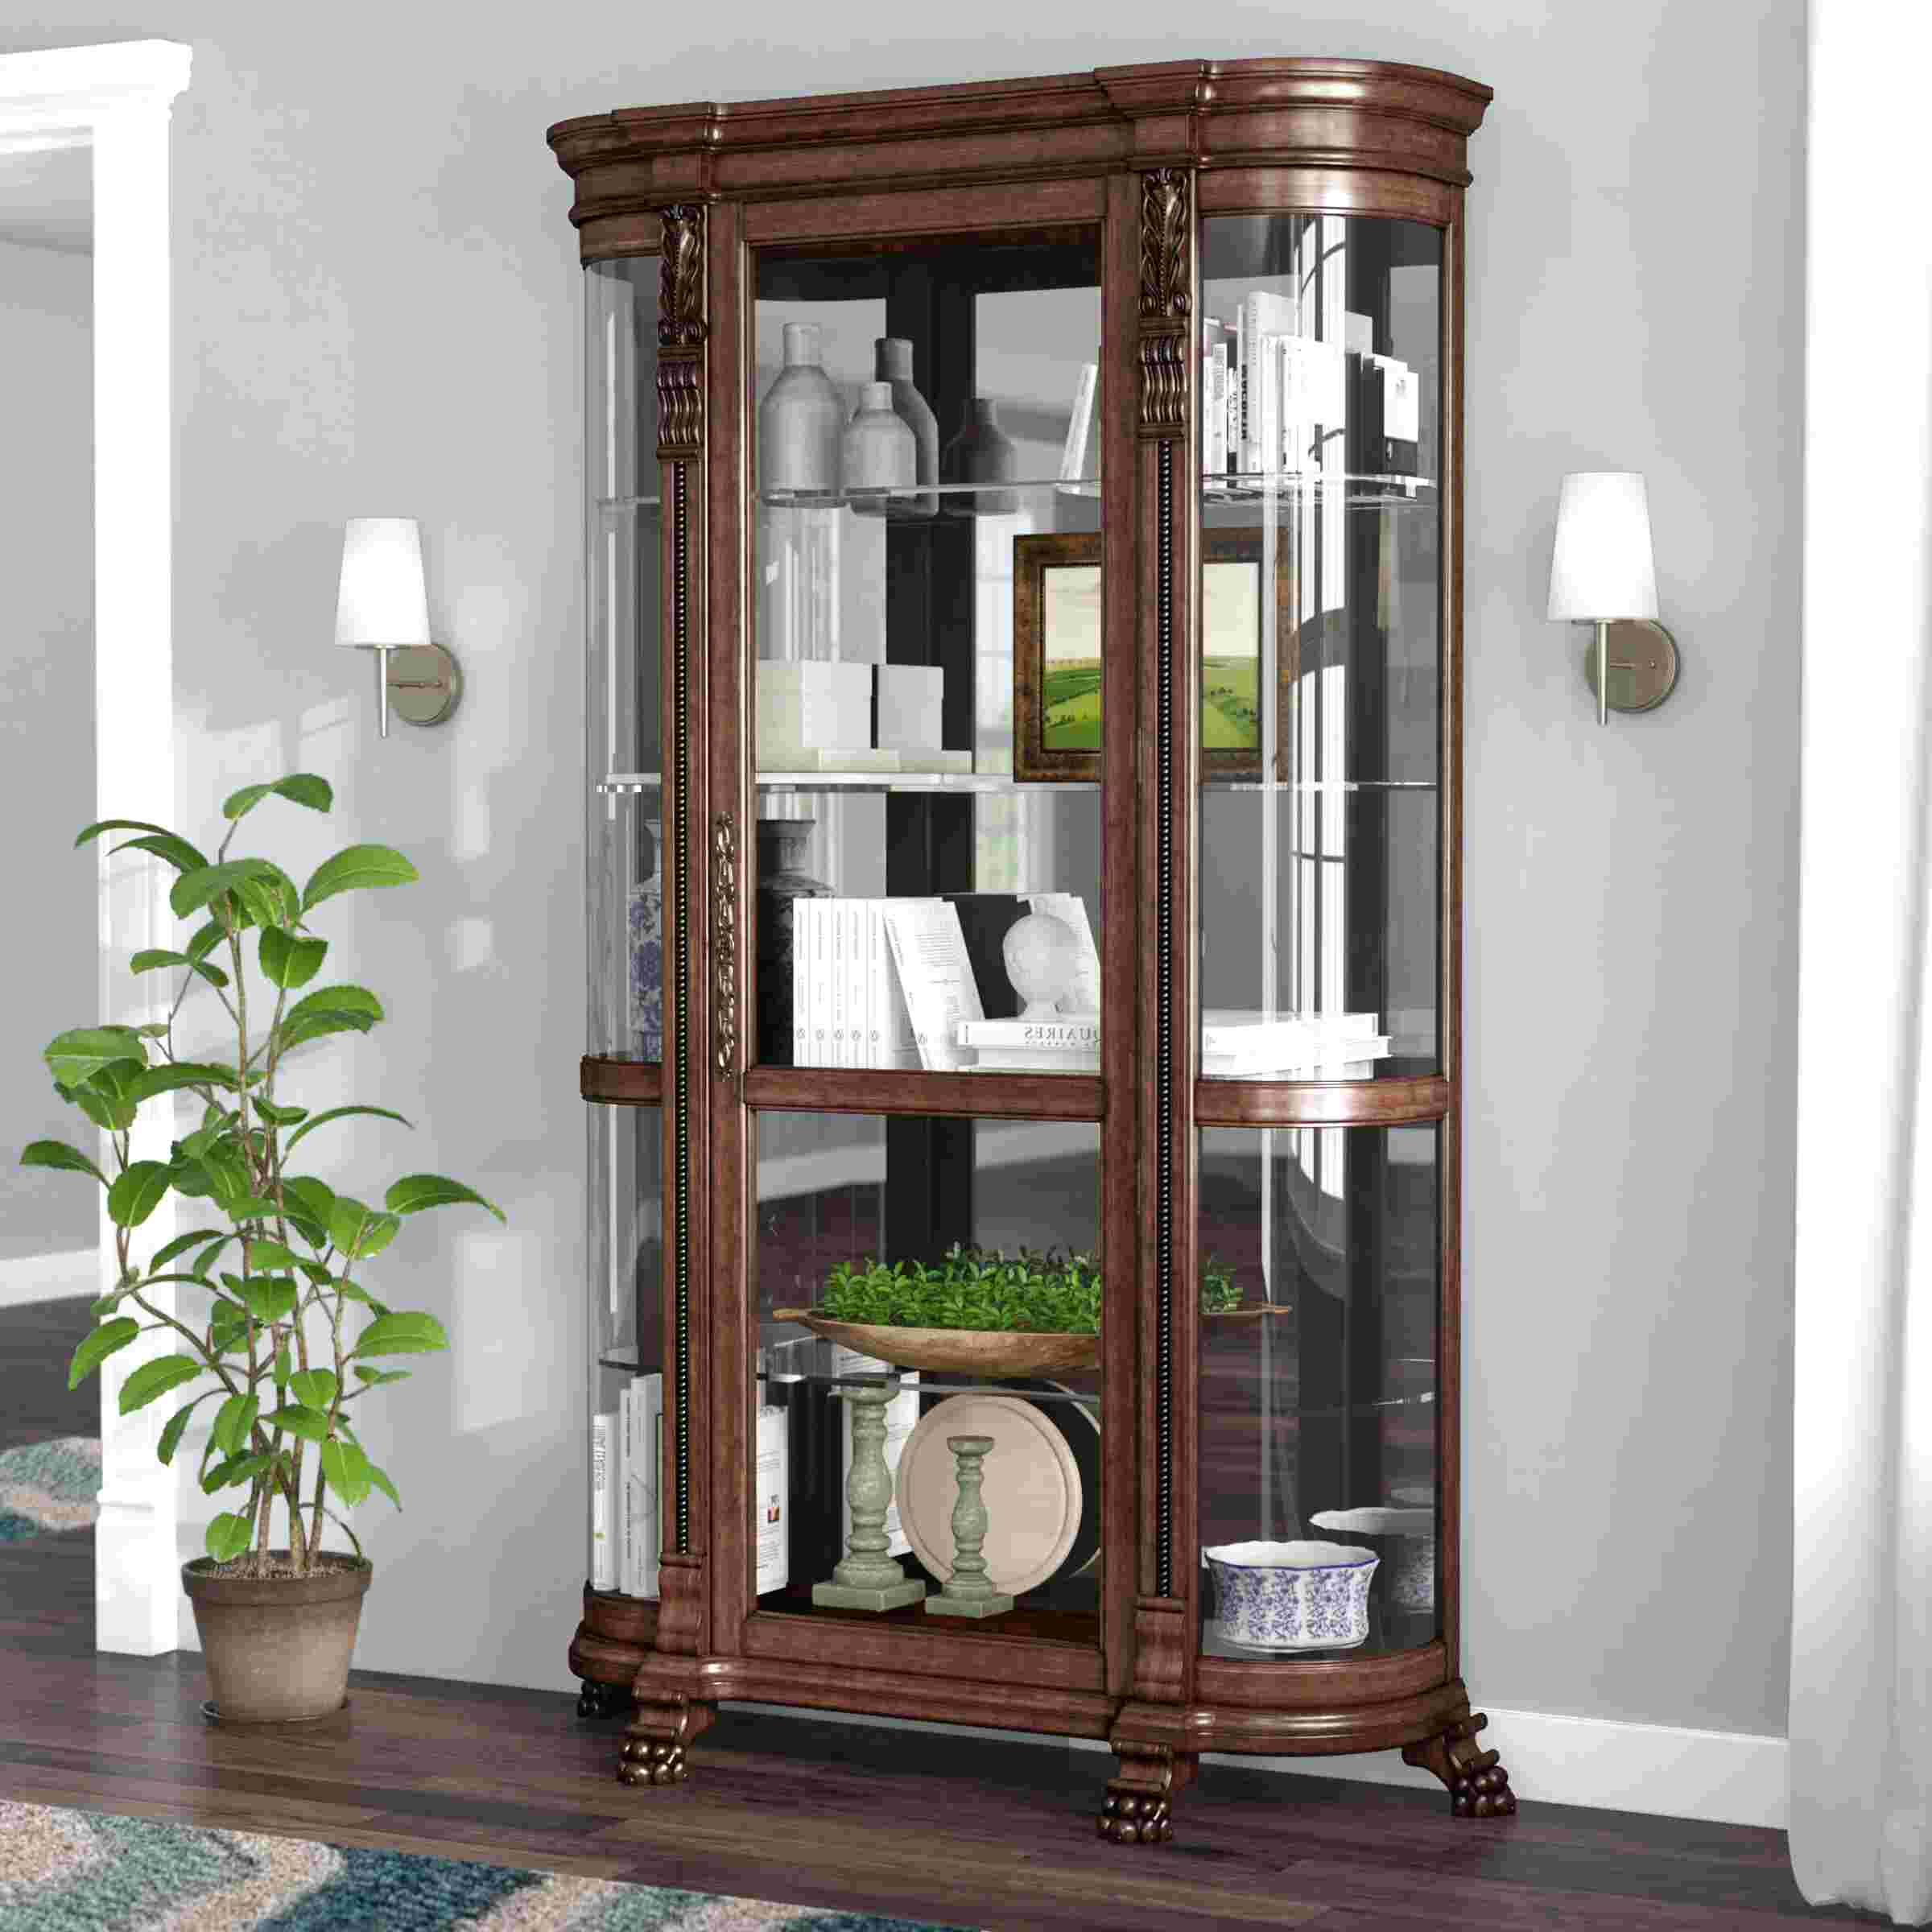 Second hand Curio Cabinet in Ireland   View 20 bargains